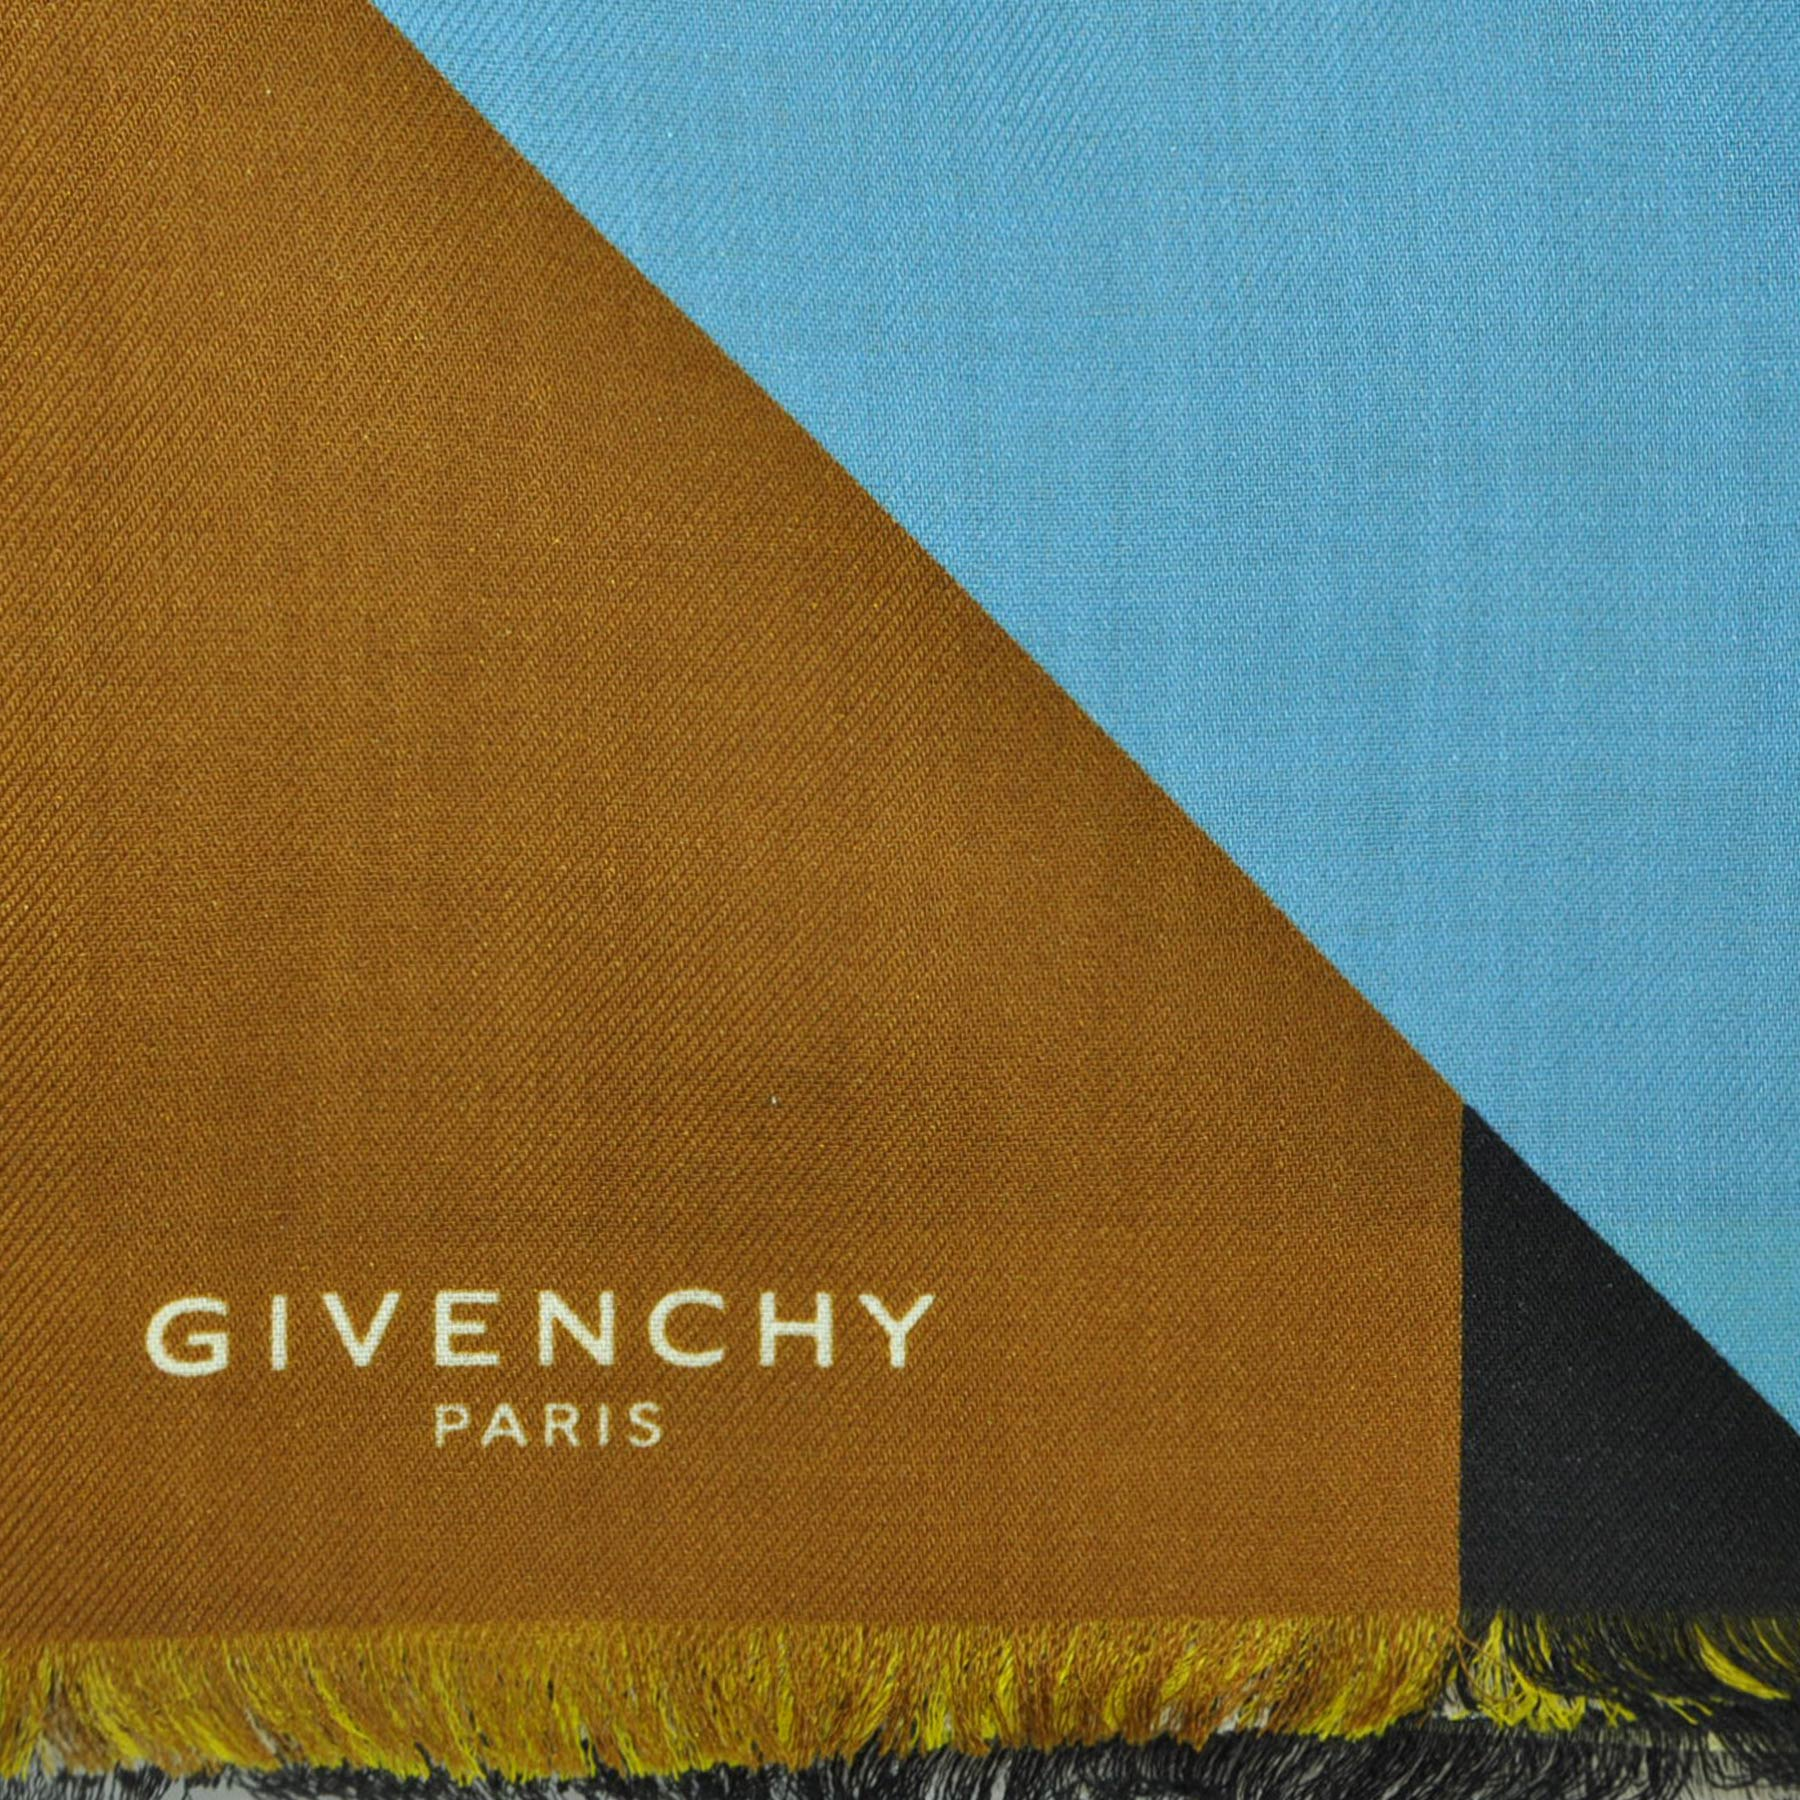 Givenchy Scarf Geometric Flag Design - Extra Large Wool Silk Square Scarf SALE